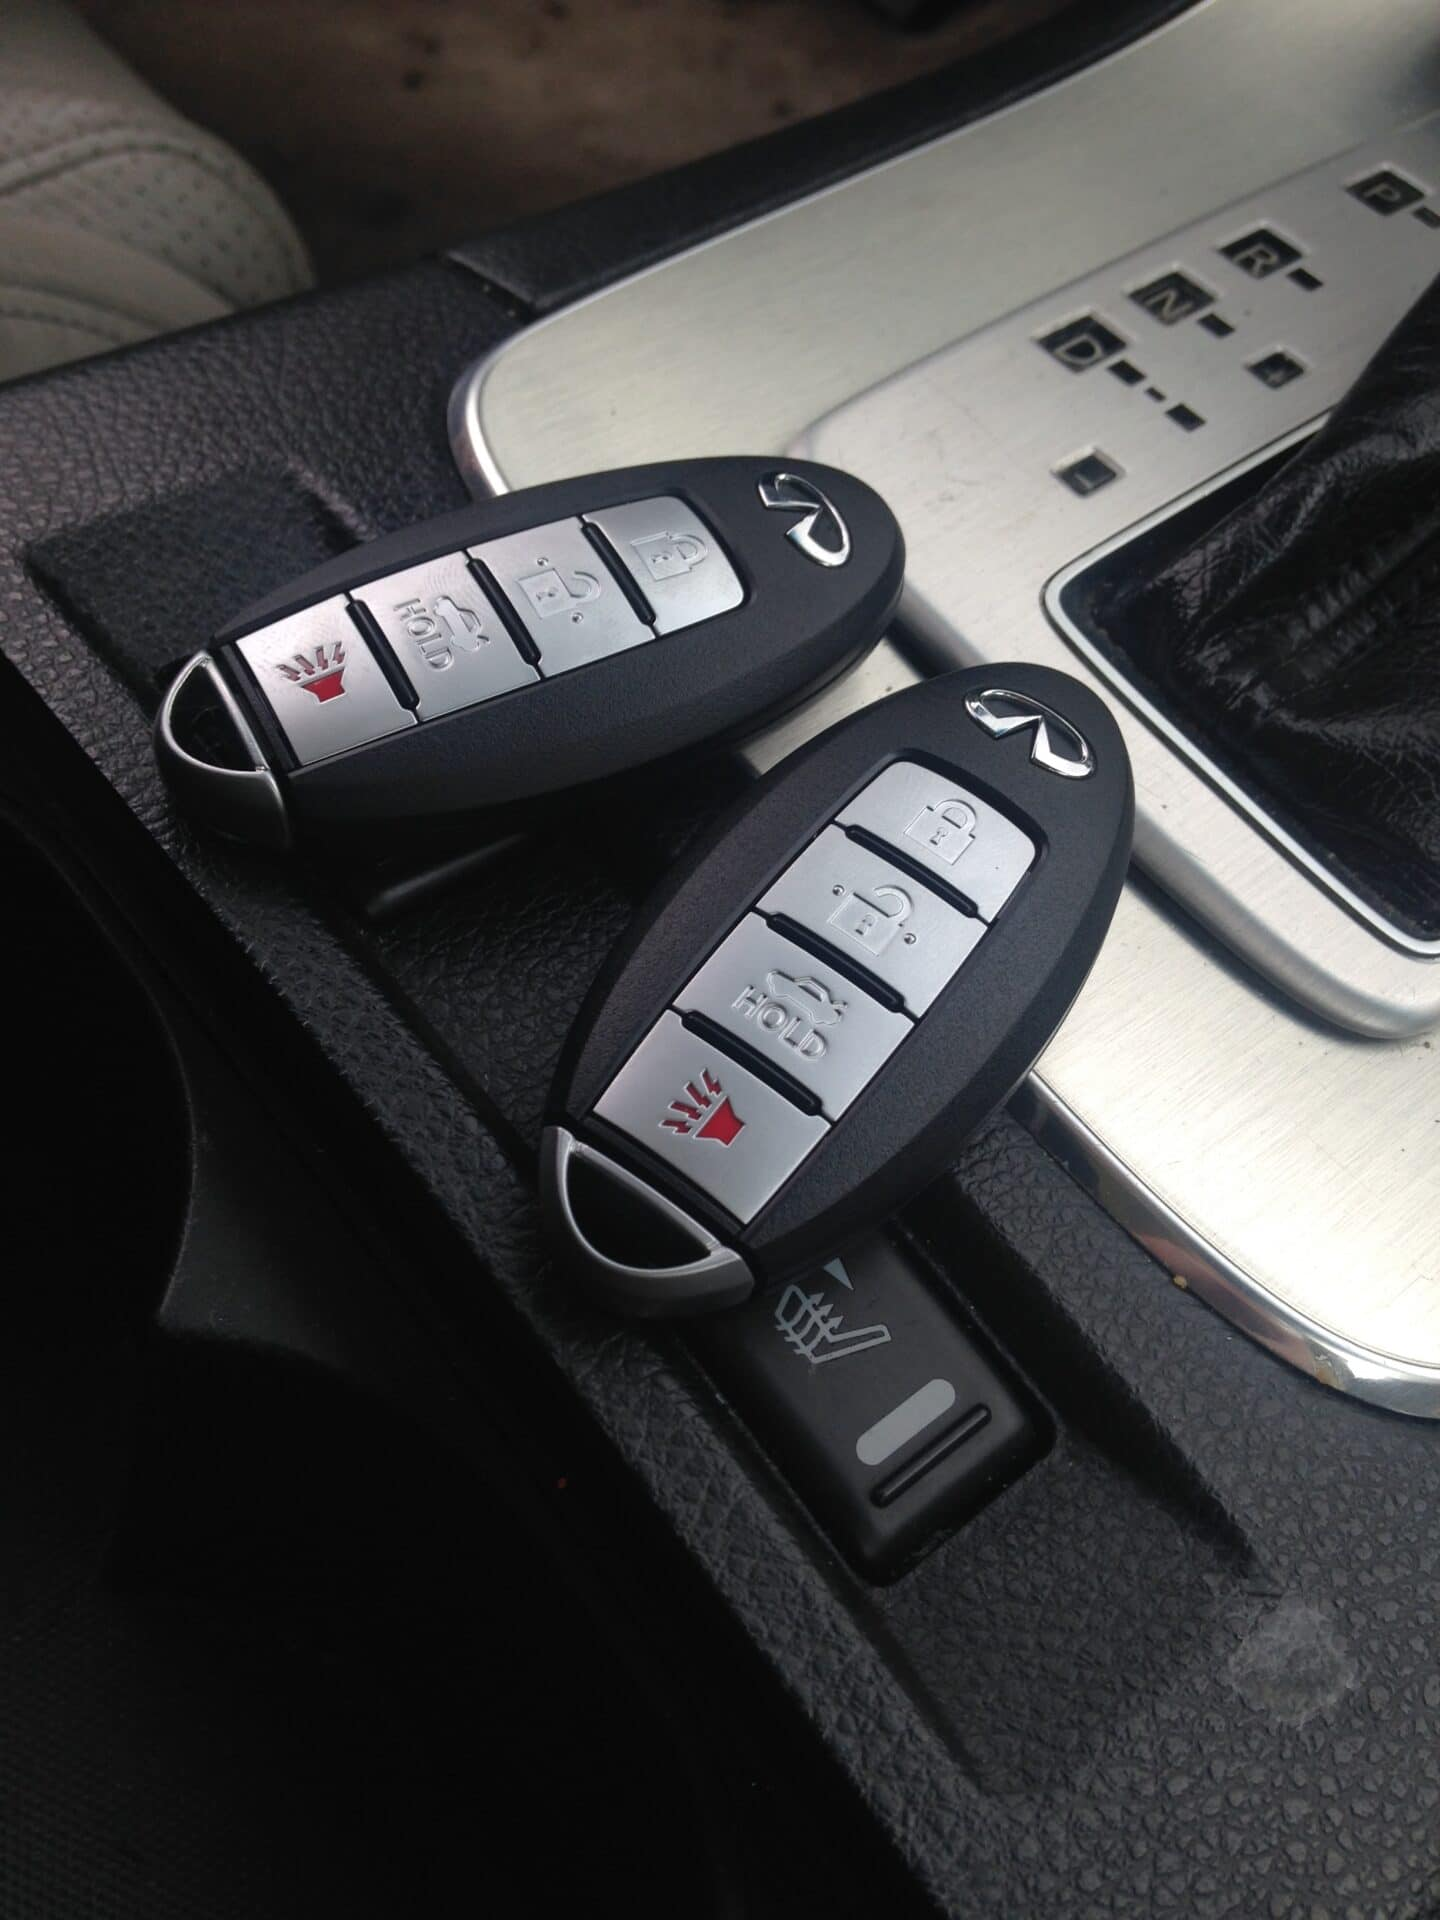 Automotive Locksmith Services DFW Area | Pro Keys Lock & Keys Solution